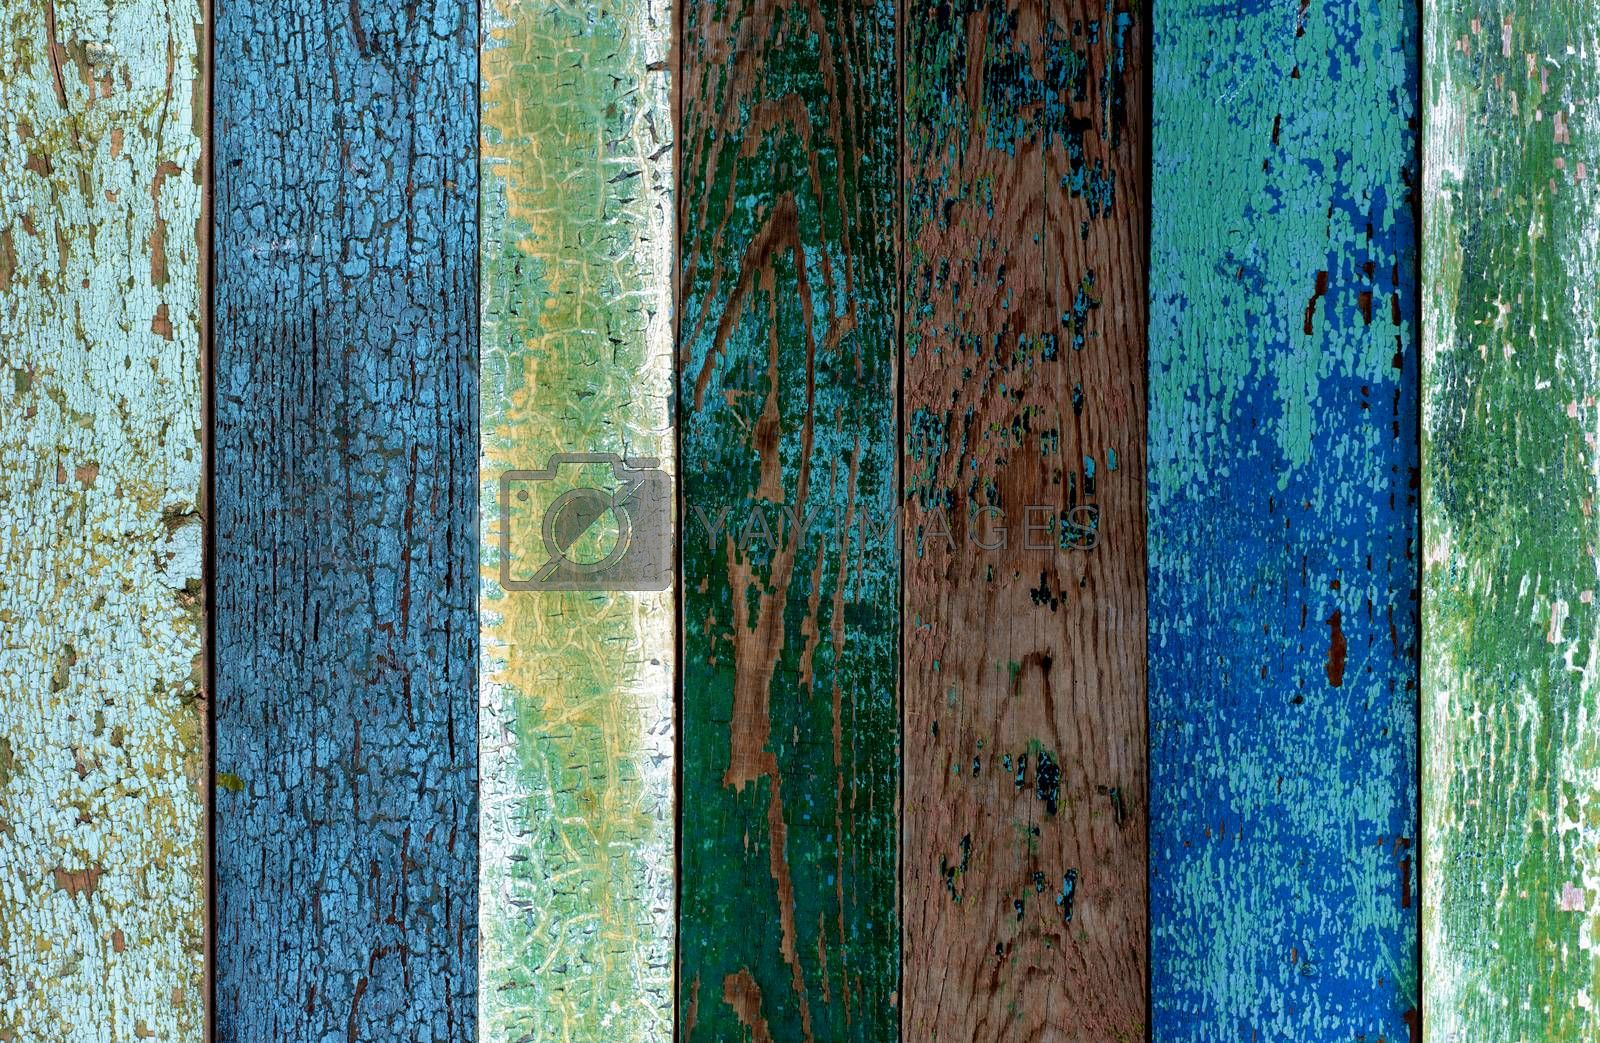 Background of Green, Blue and Grey Old Cracked Wooden Board closeup